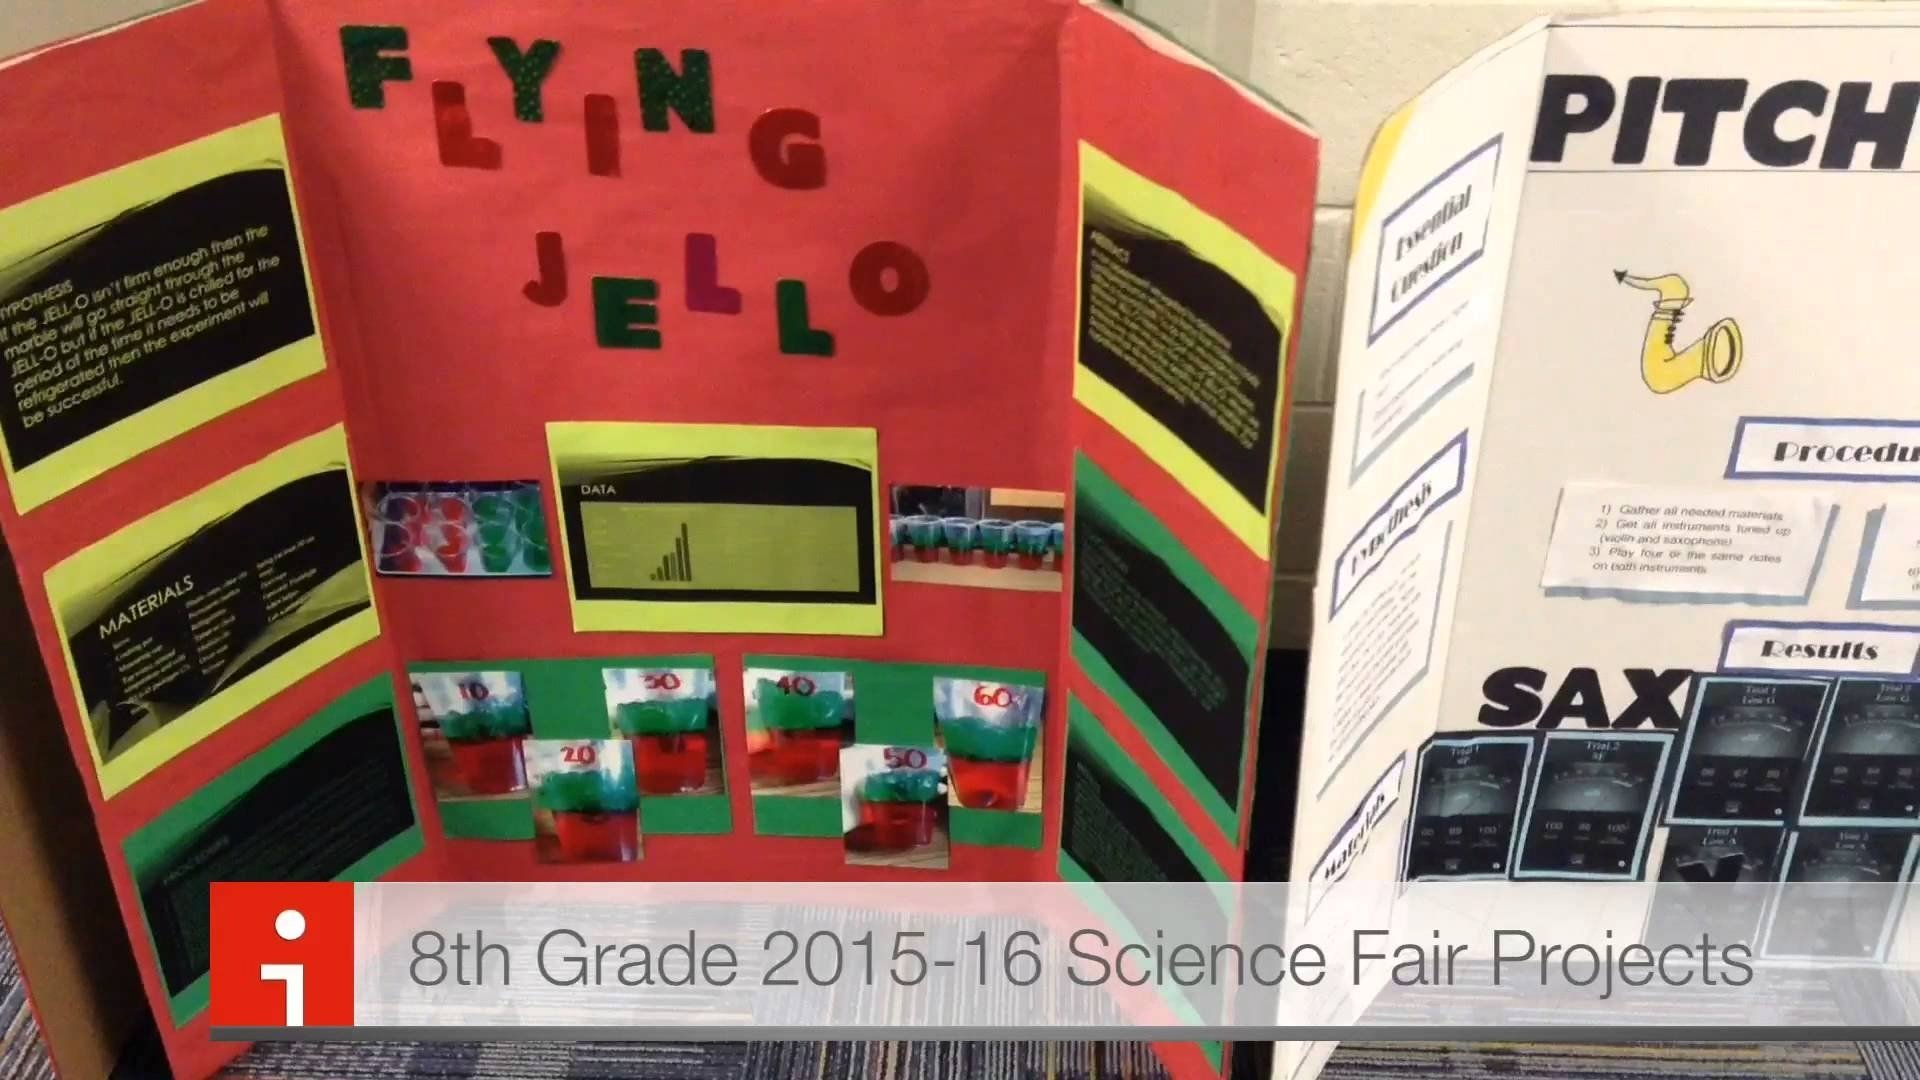 10 Most Recommended Science Fair Projects For 8Th Graders Winning Ideas 2015 16 8th grade science fair projects youtube 6 2020